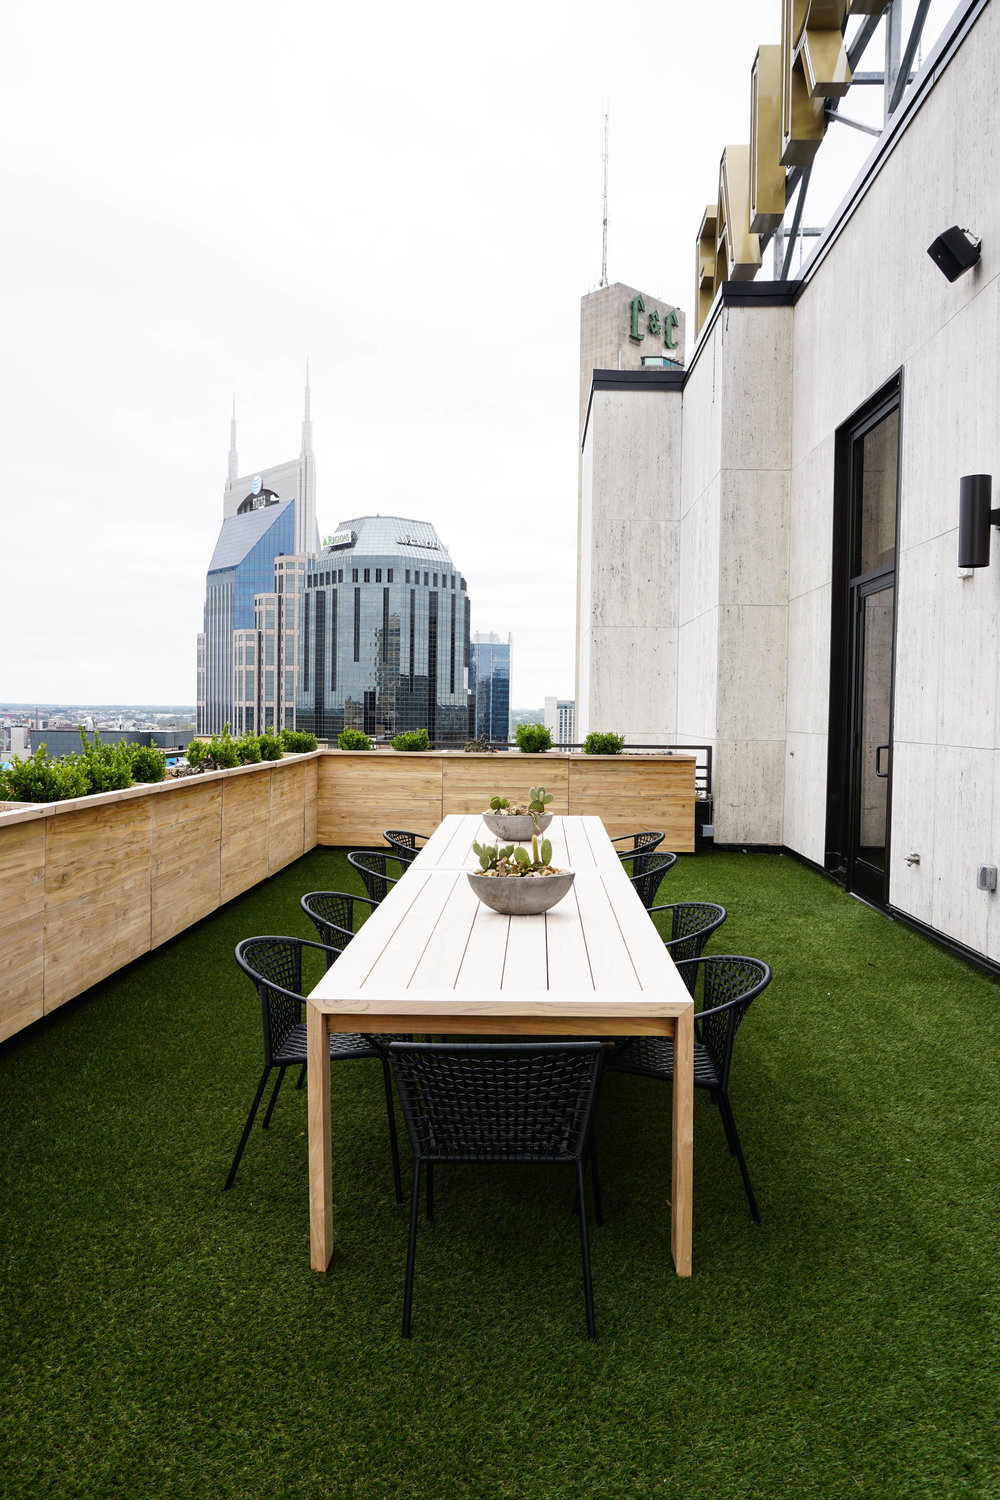 the-fairlane-nashville-tennessee-hotel-where-to-stay-penthouse.jpg